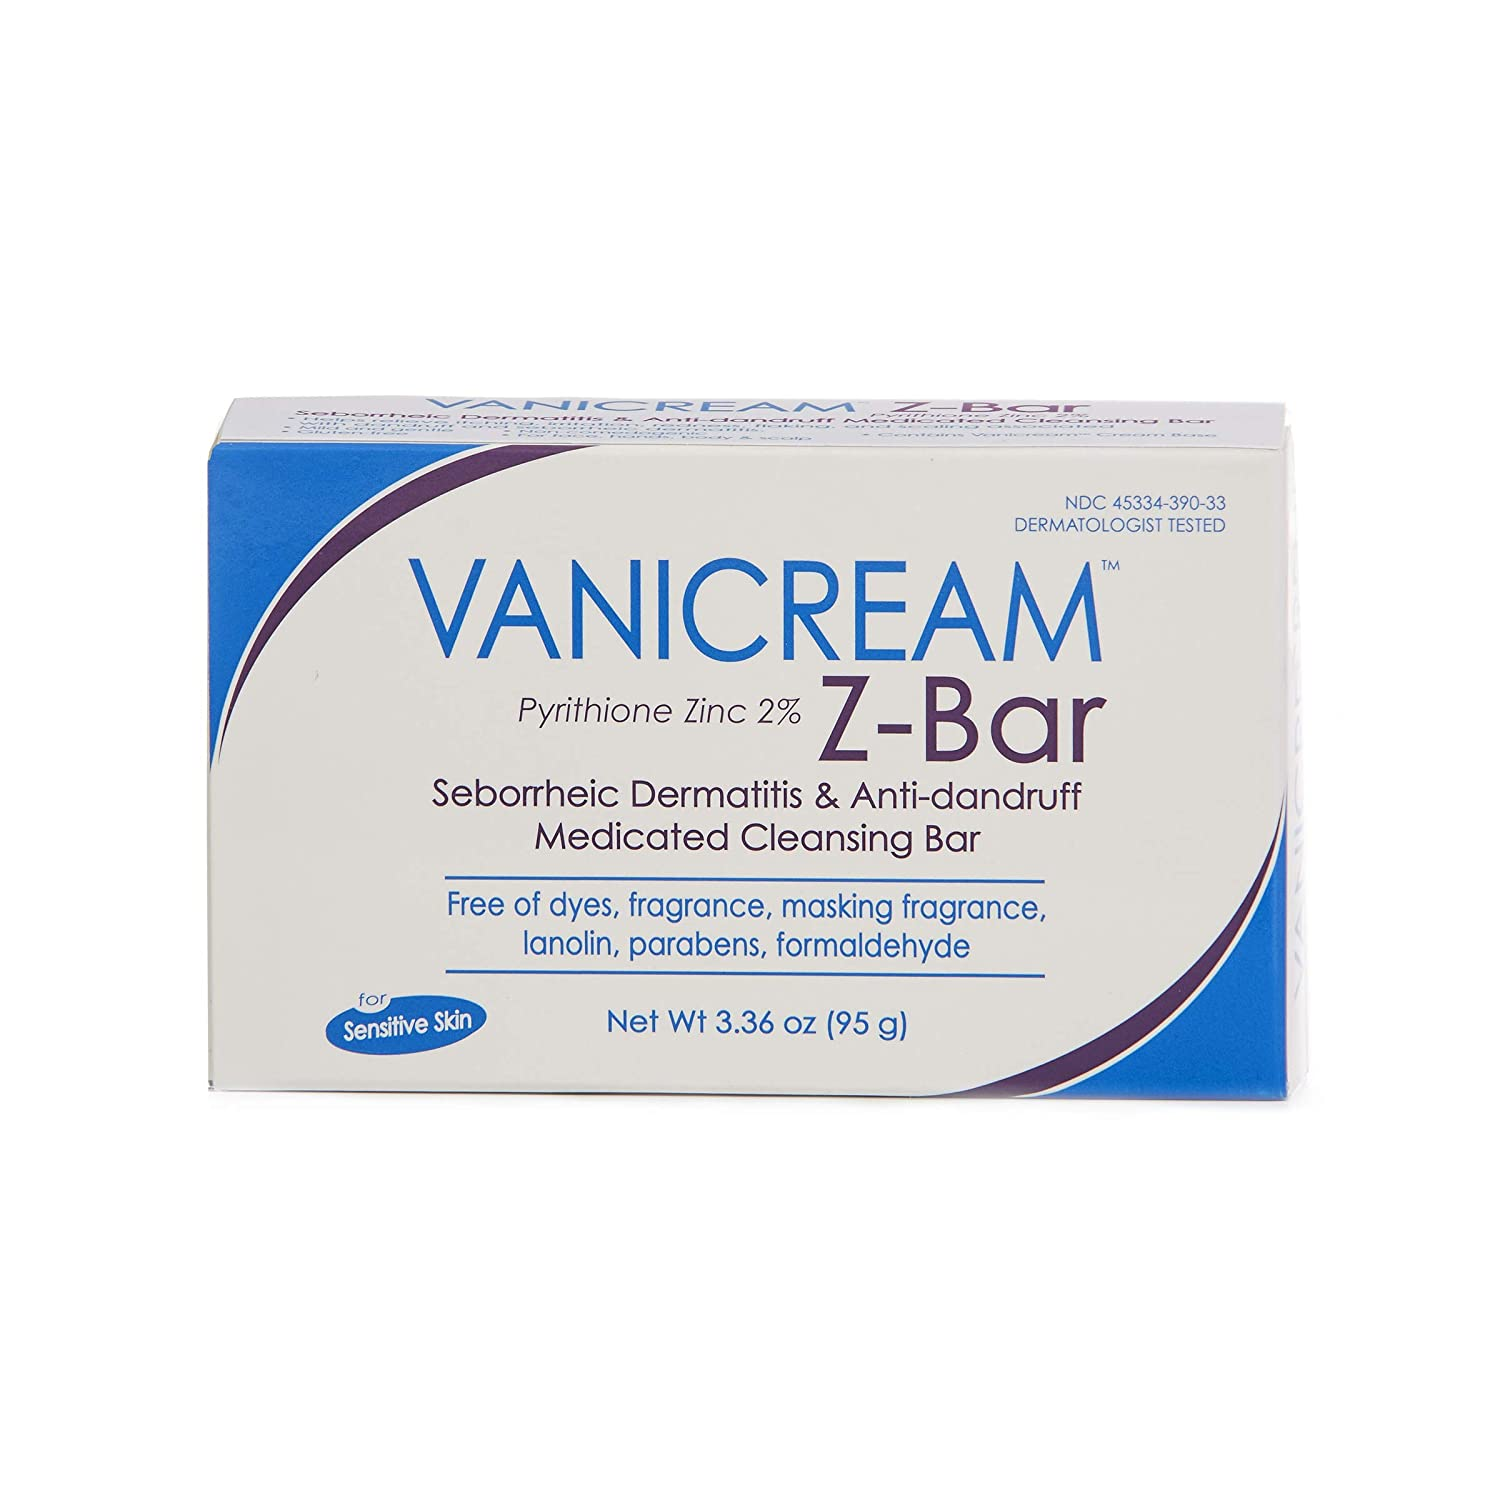 Vanicream Z-Bar | Medicated Cleansing Bar for Sensitive Skin | Maximum OTC Strength Zinc Pyrithione 2% | Helps Relieve Itching, Redness, and Flaking | 3.36 ounce: Beauty